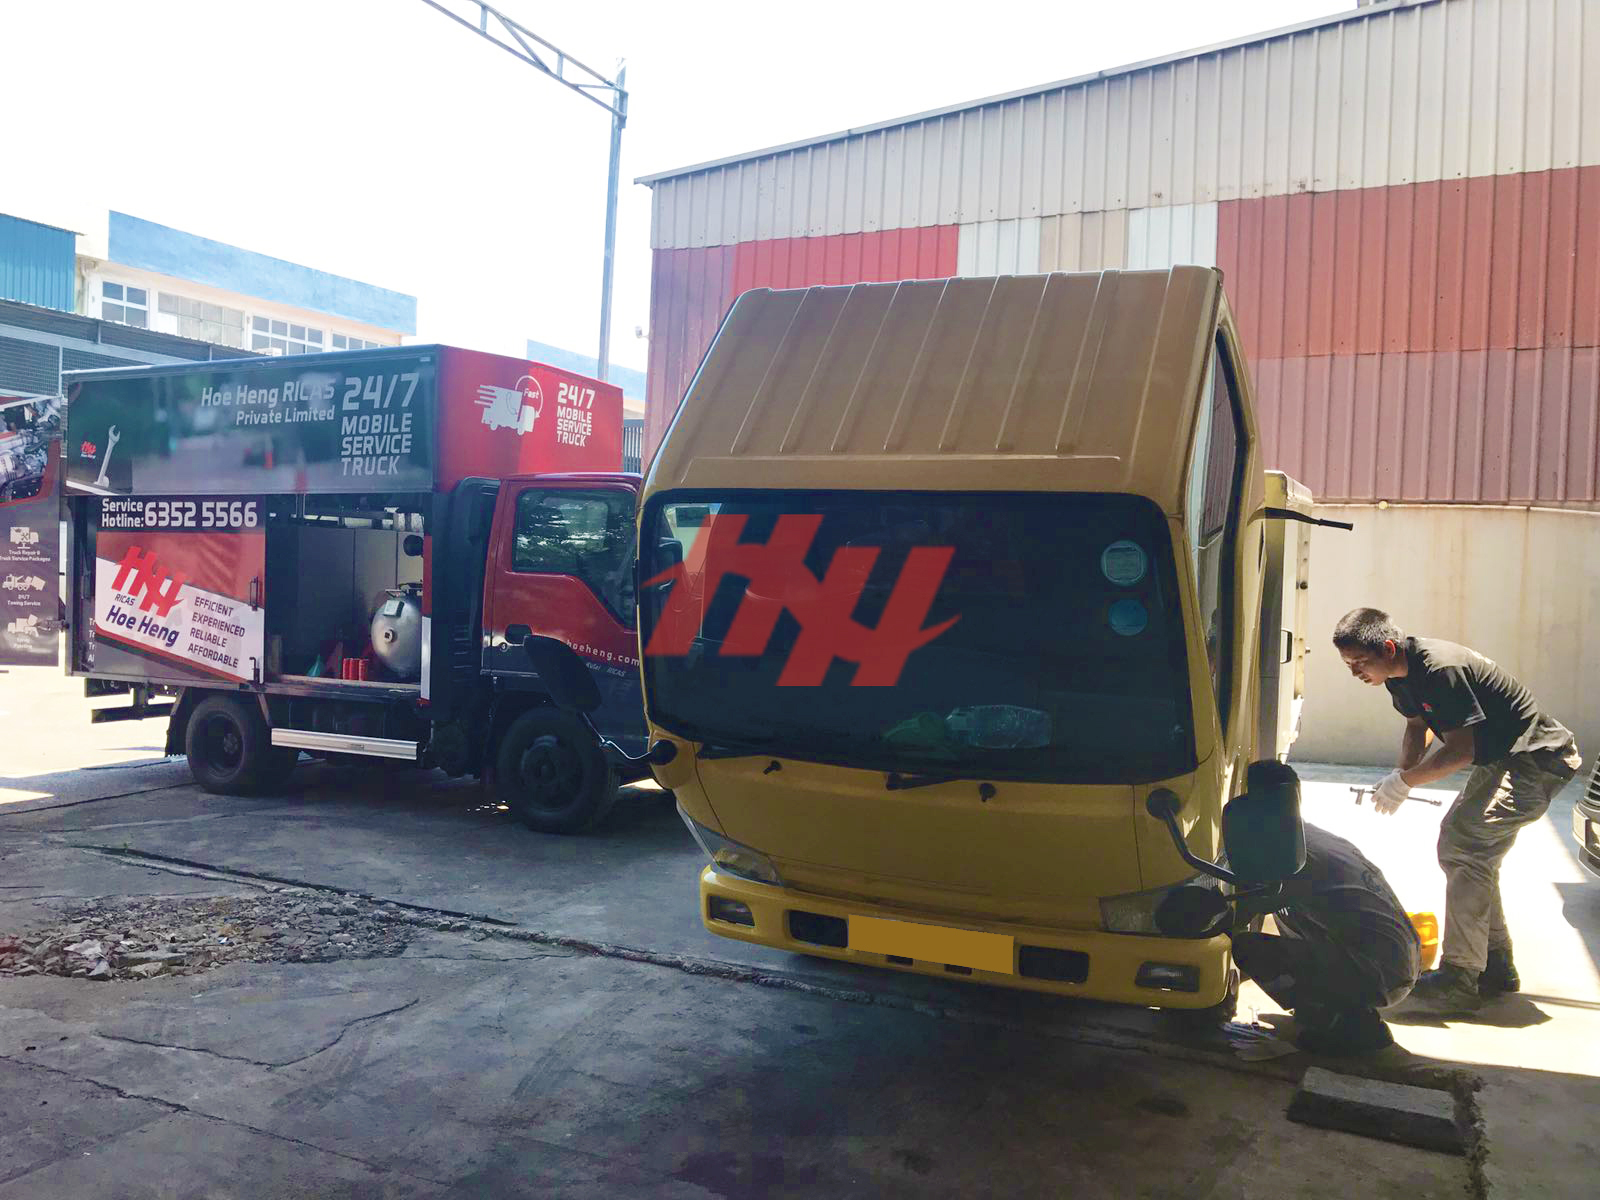 24Hrs Mobile Truck Repair and Service